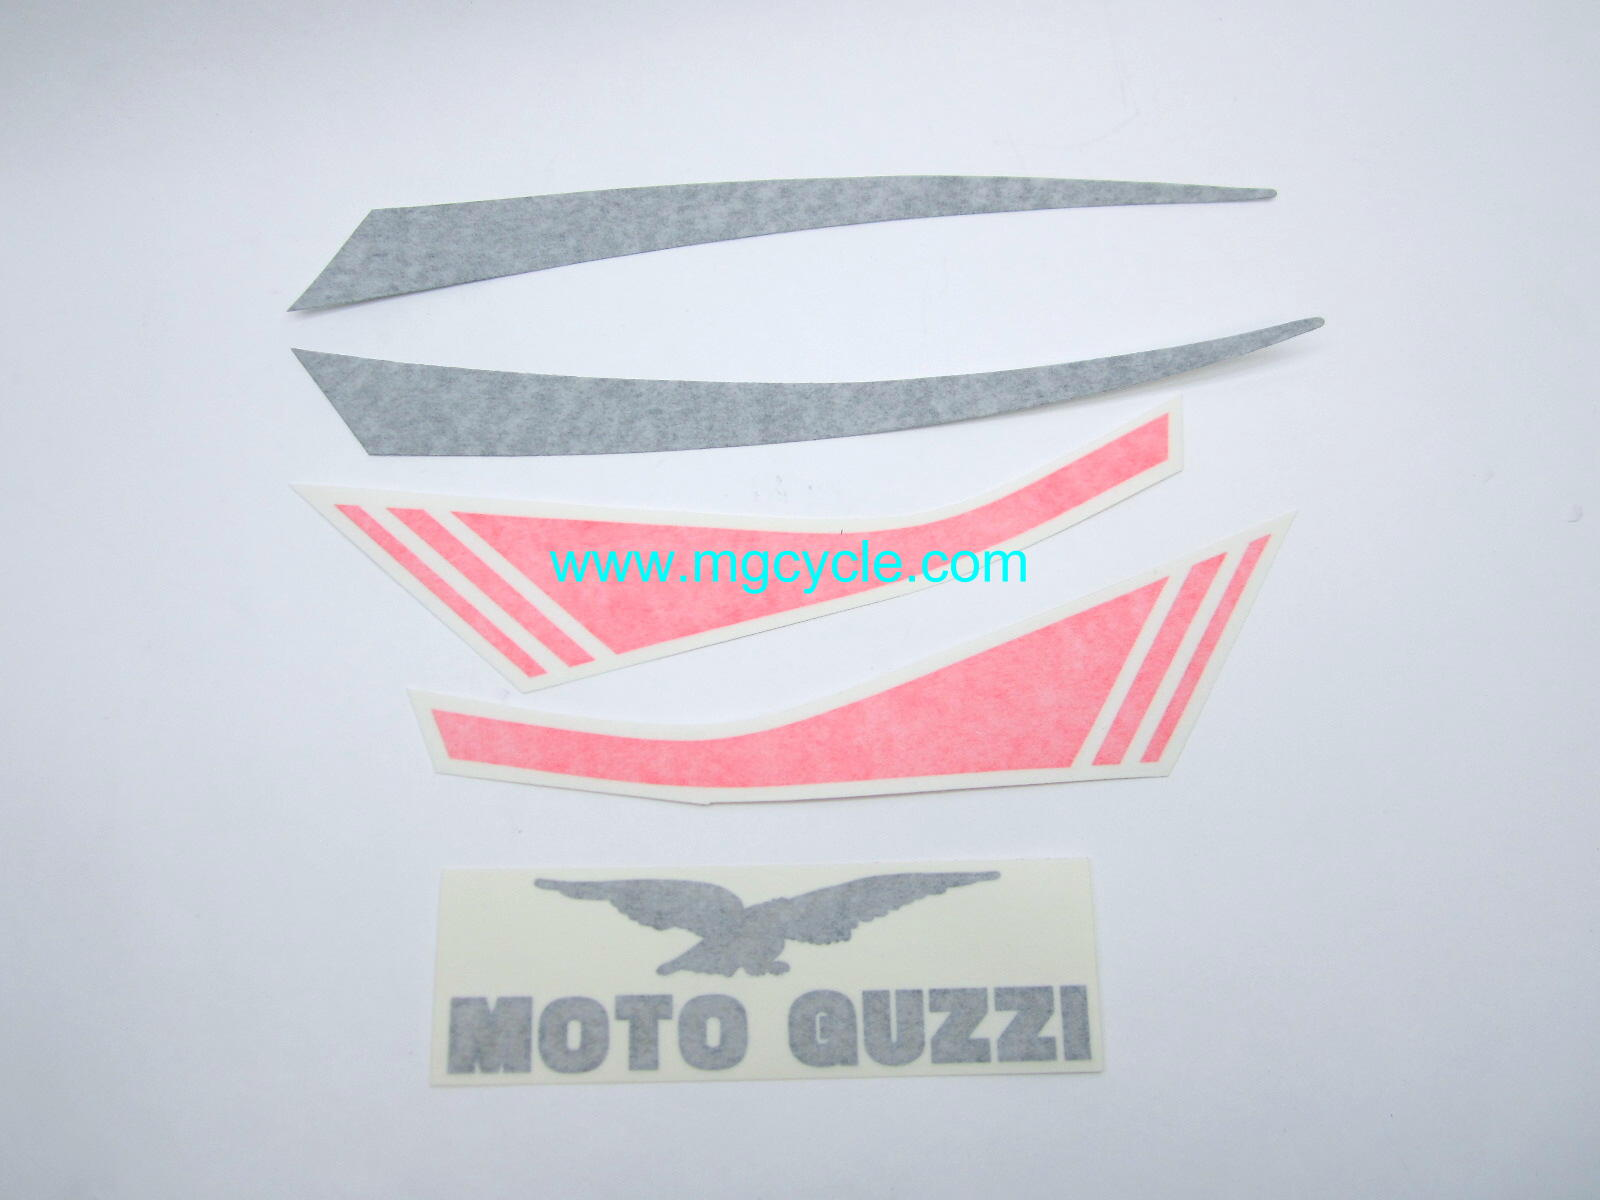 decal set for 850 LeMans III fairing